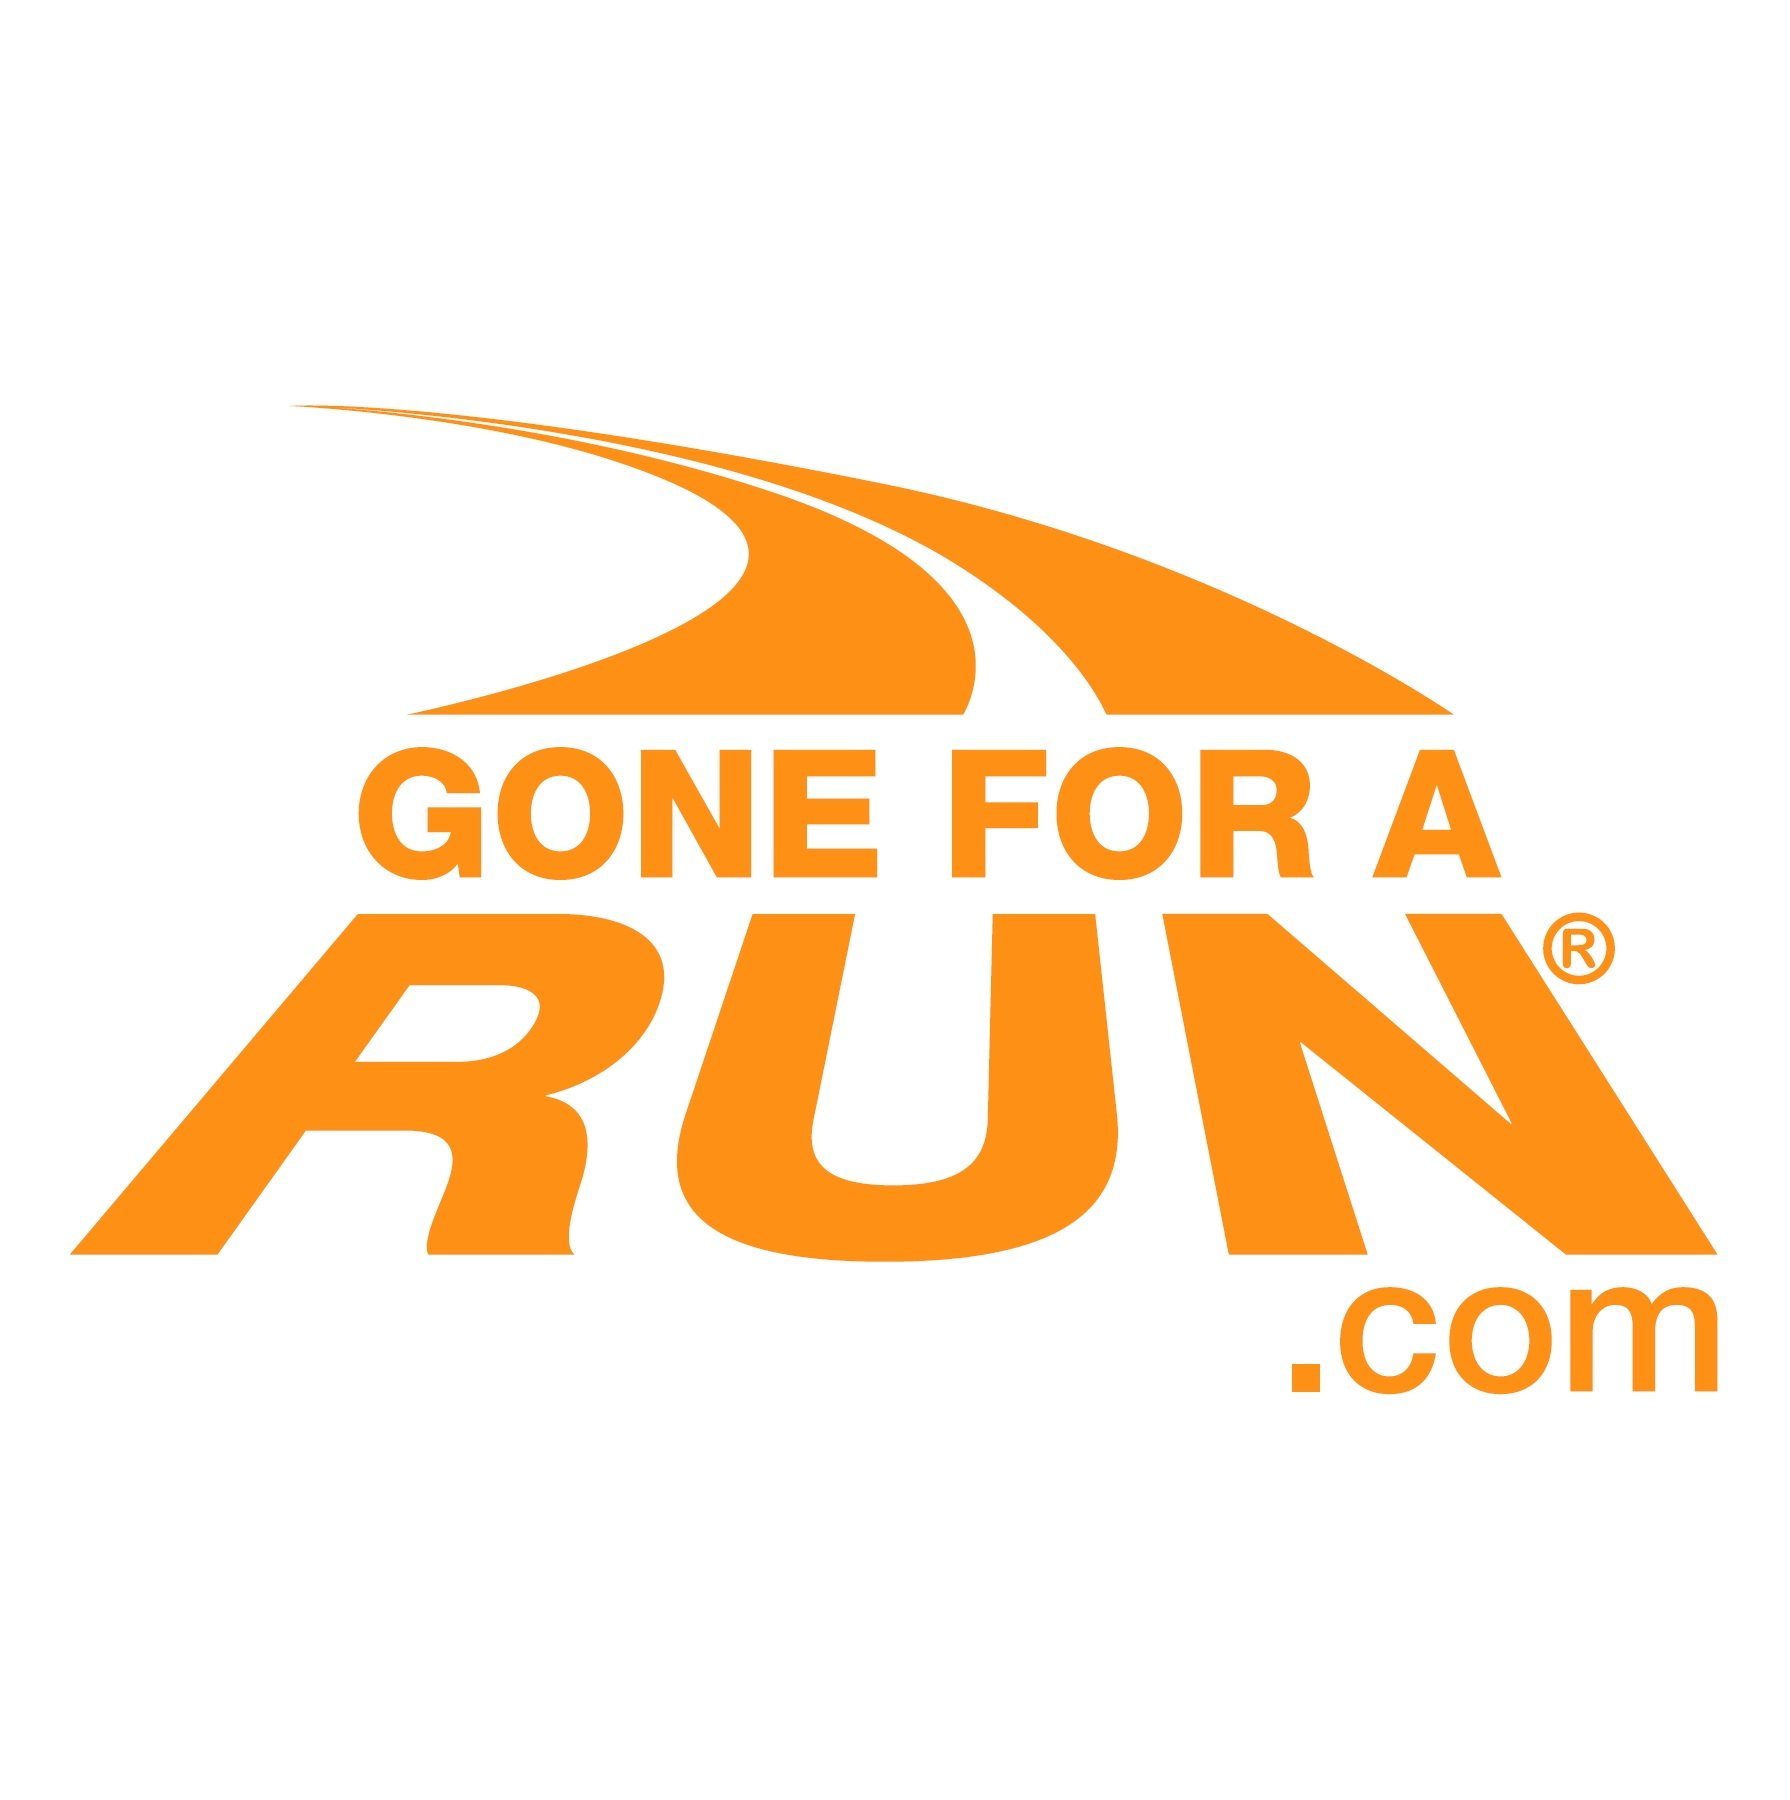 Gone For a Run Printed Arm Sleeves Candy Cane Stripes by Gone For a Run (Image #4)